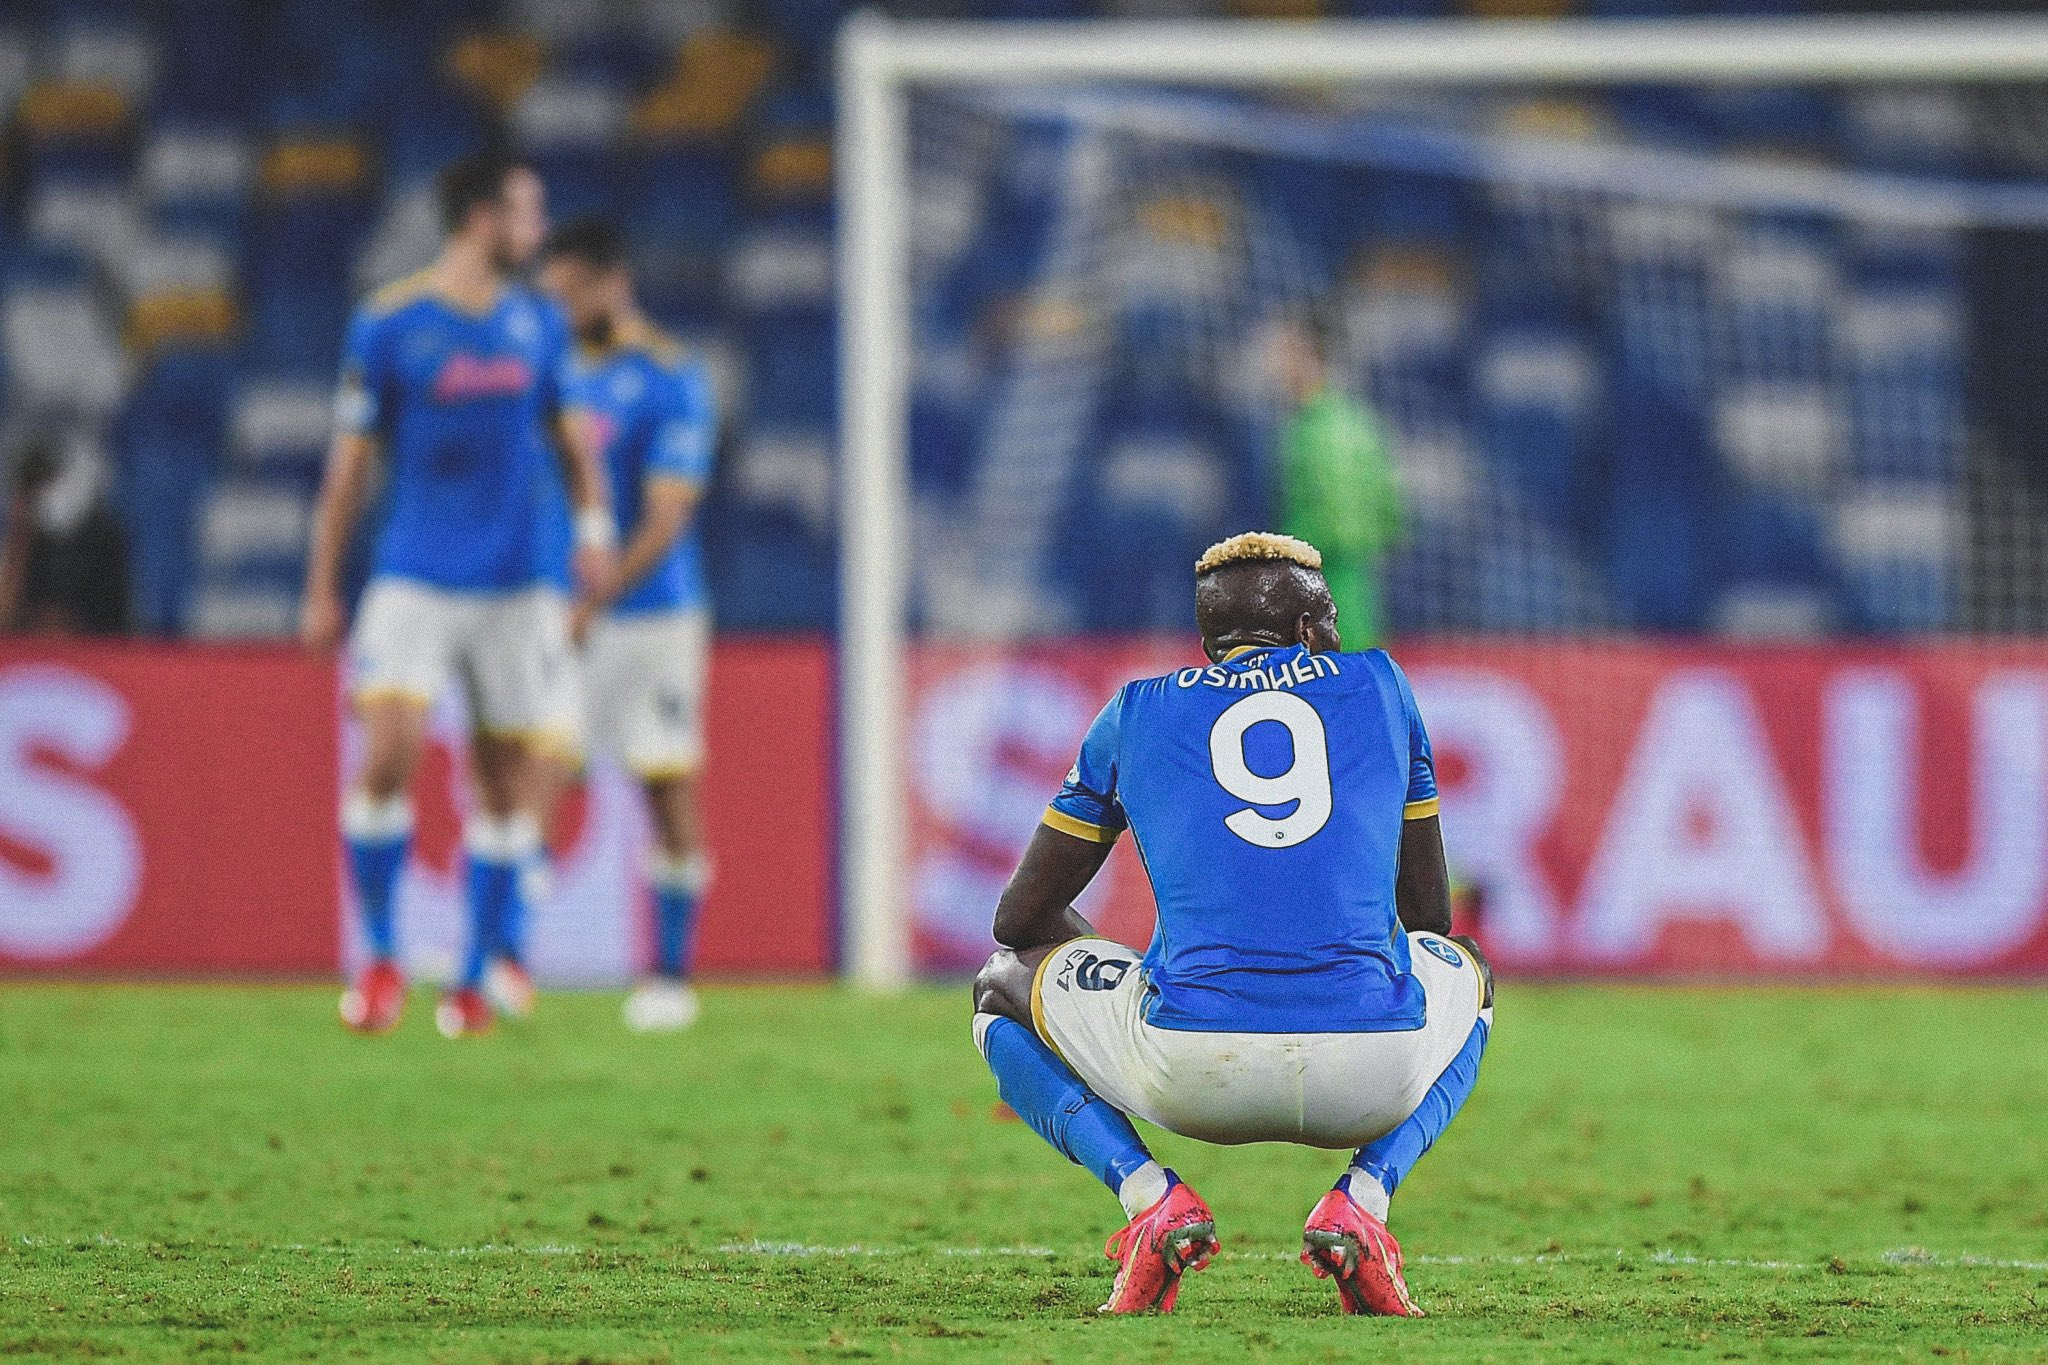 Europa: Osimhen Reacts To Napoli's Home Loss To Spartak Moscow